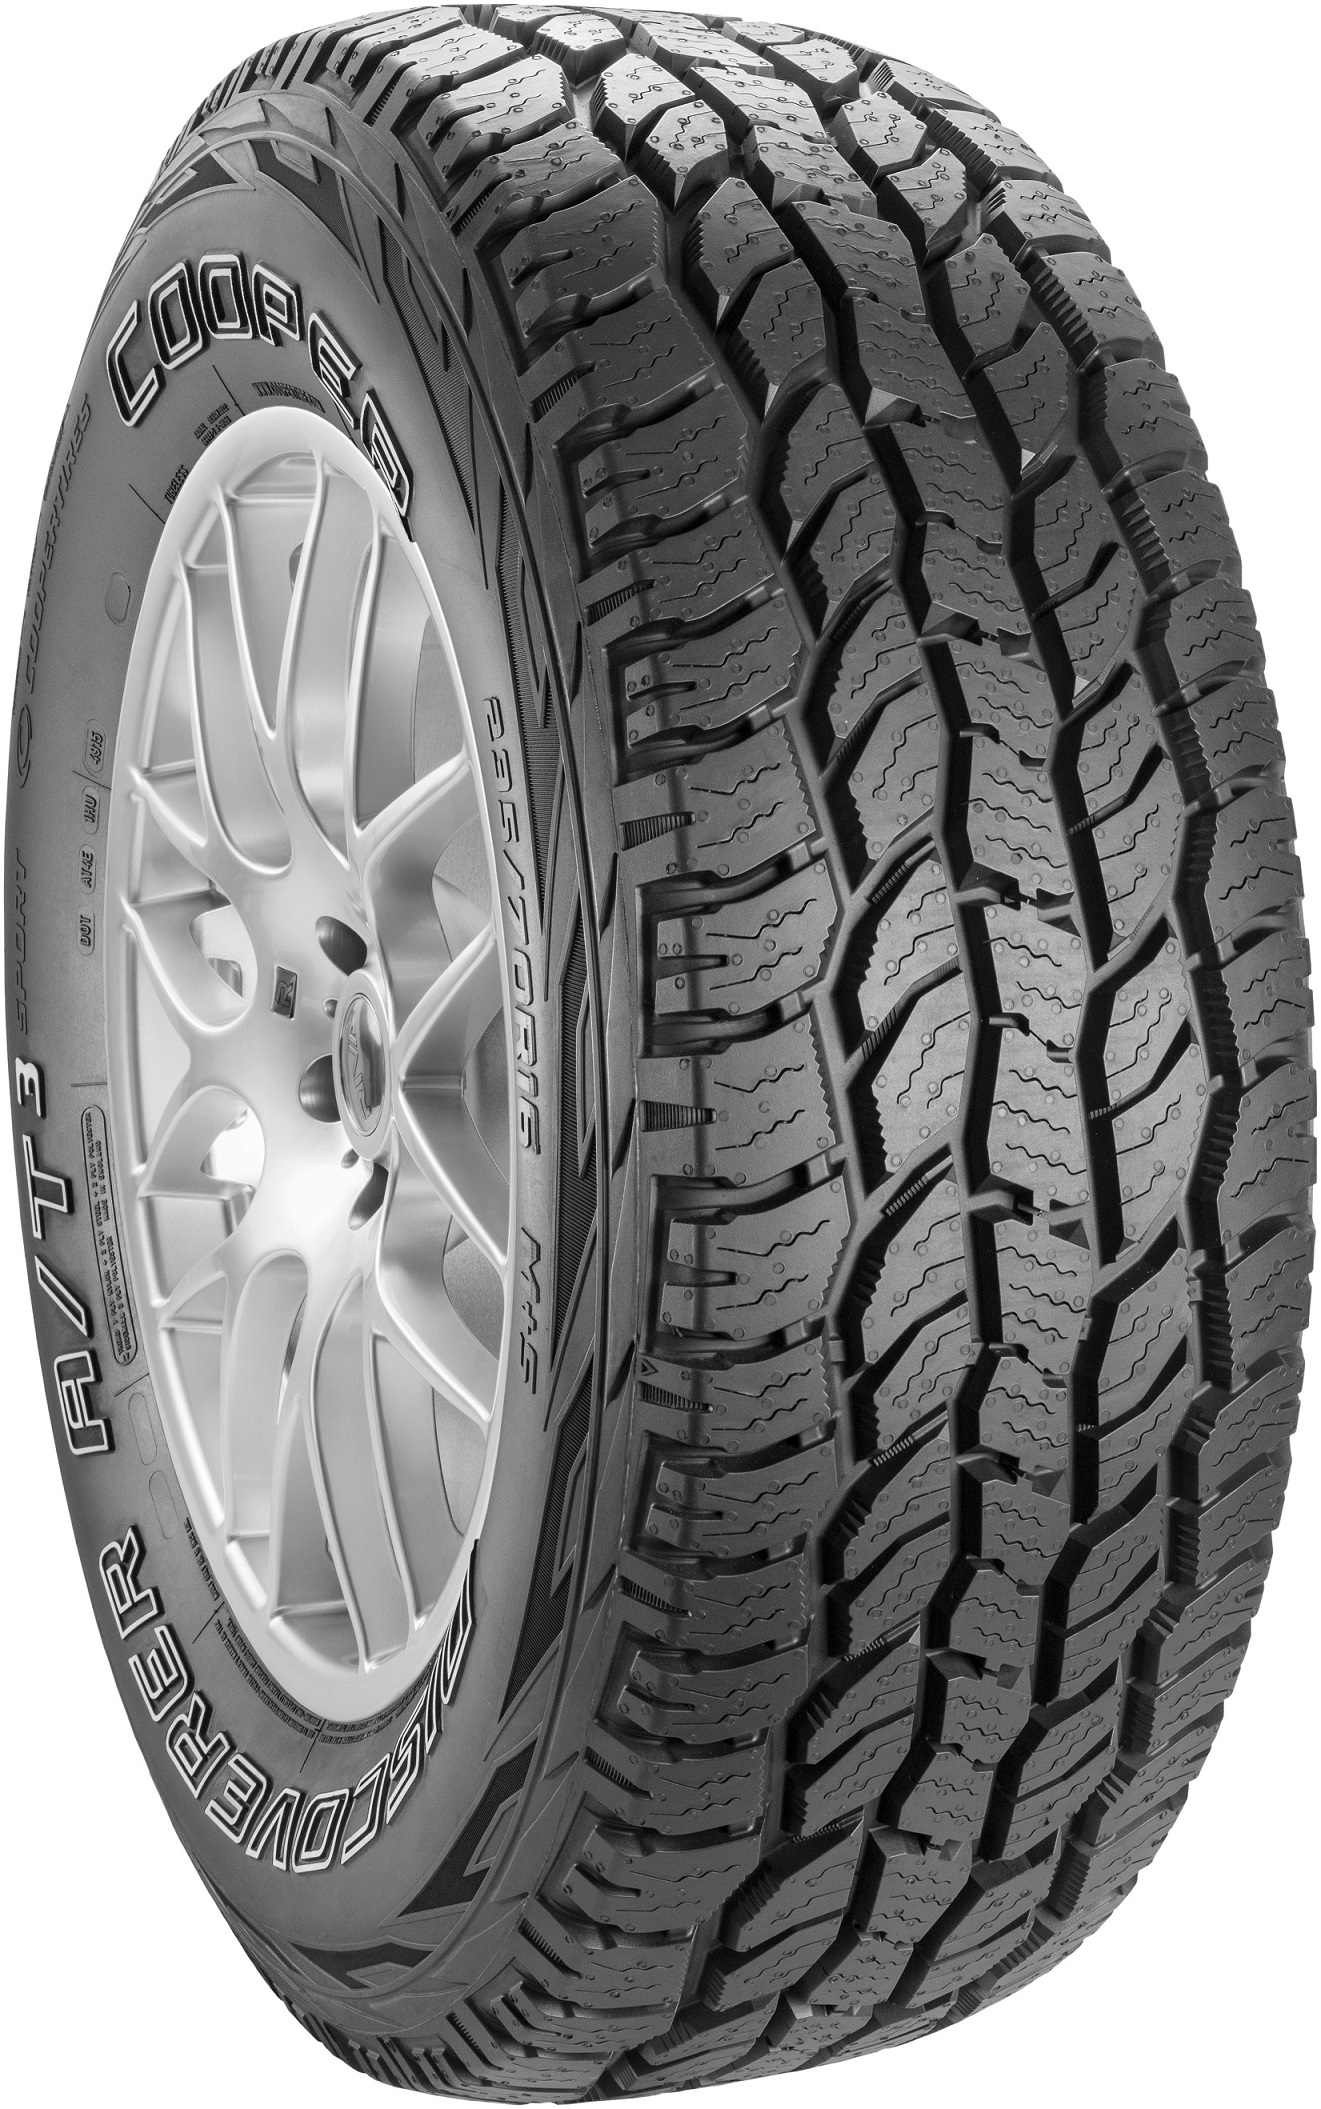 Gomme Nuove Cooper Tyres 265/70 R15 112T DISCOVERER AT3 SPORT pneumatici nuovi Estivo